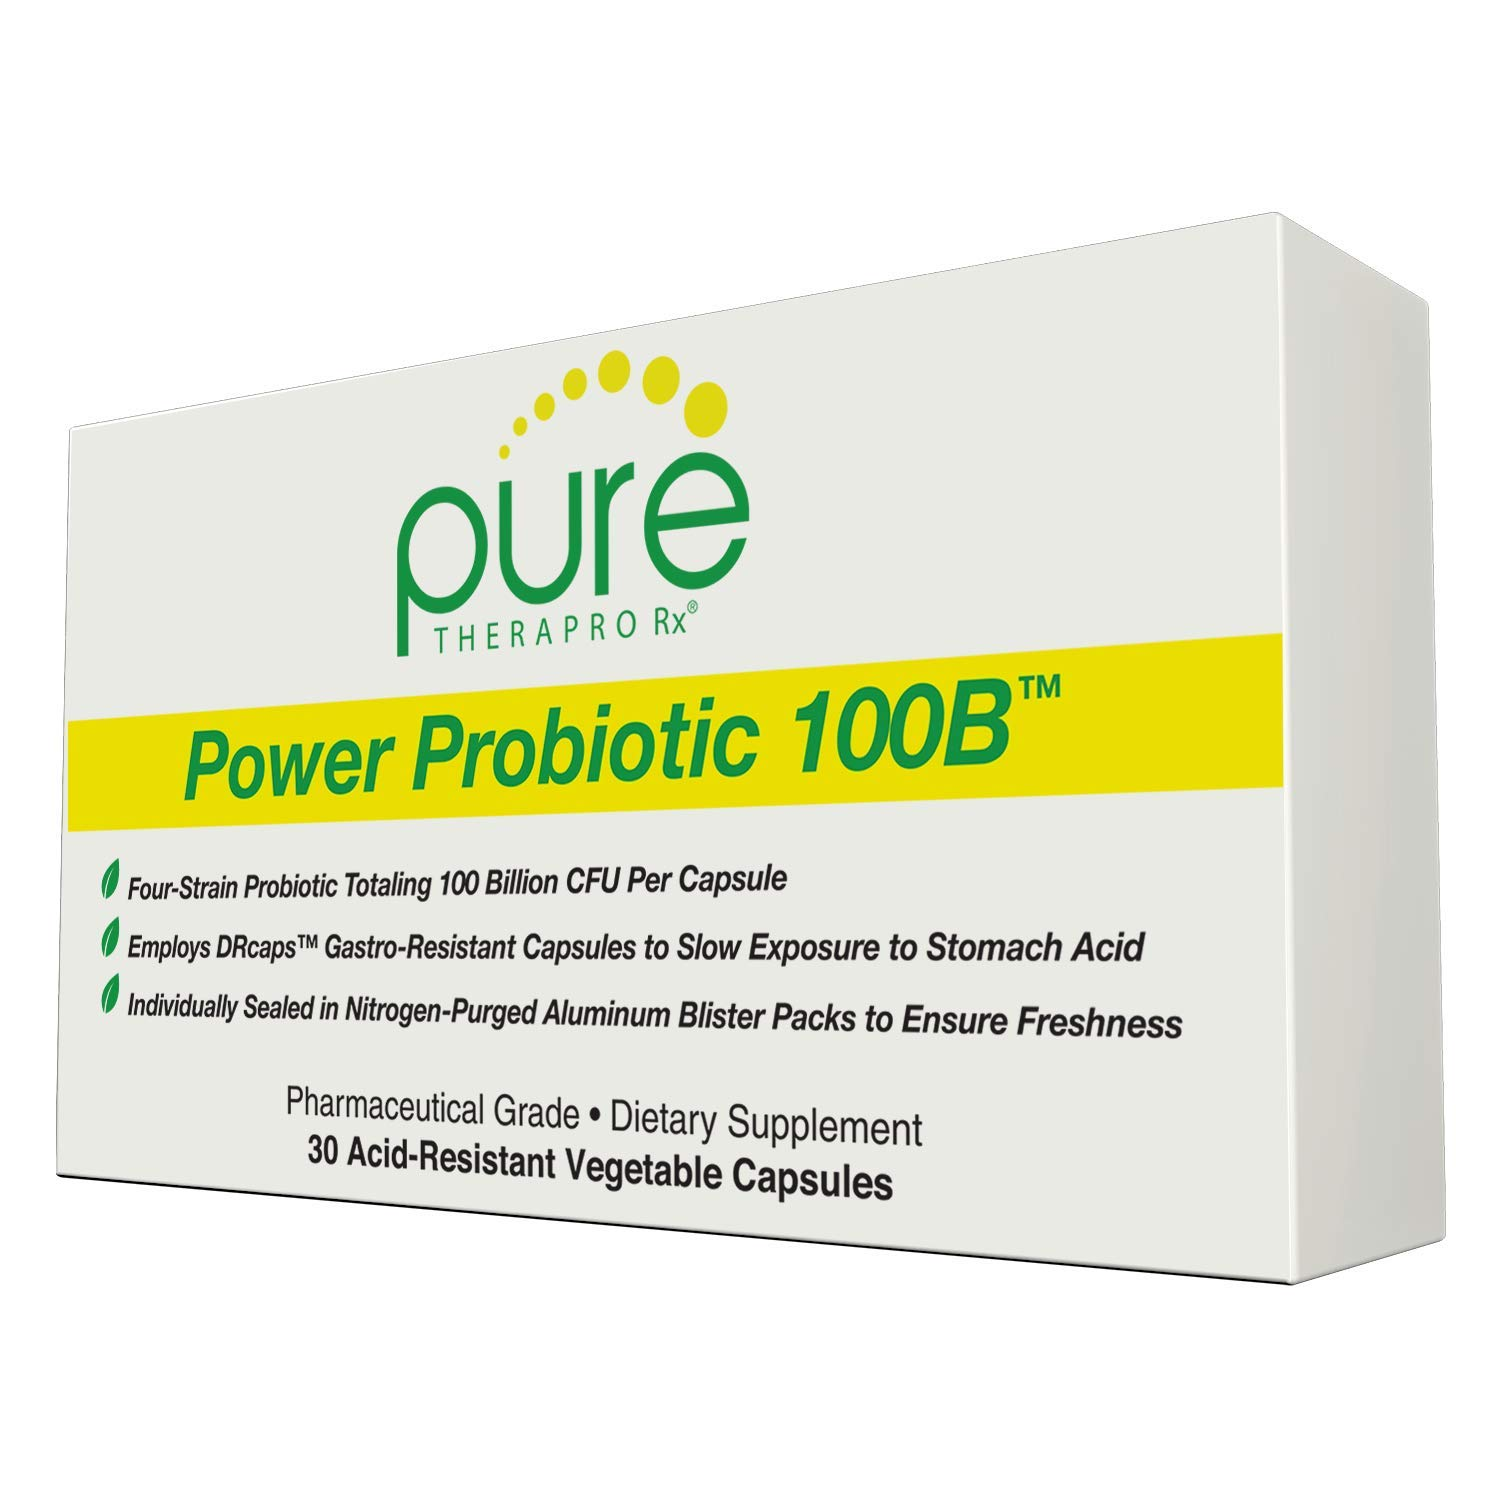 Power Probiotic 100B - 30''Acid-Resistant'' VCaps | 4 Proven Strains - 100 Billion CFU Per Capsule | Sealed in Nitrogen-Purged Aluminum Blister Packs to Insure Freshness | NO Refrigeration Required